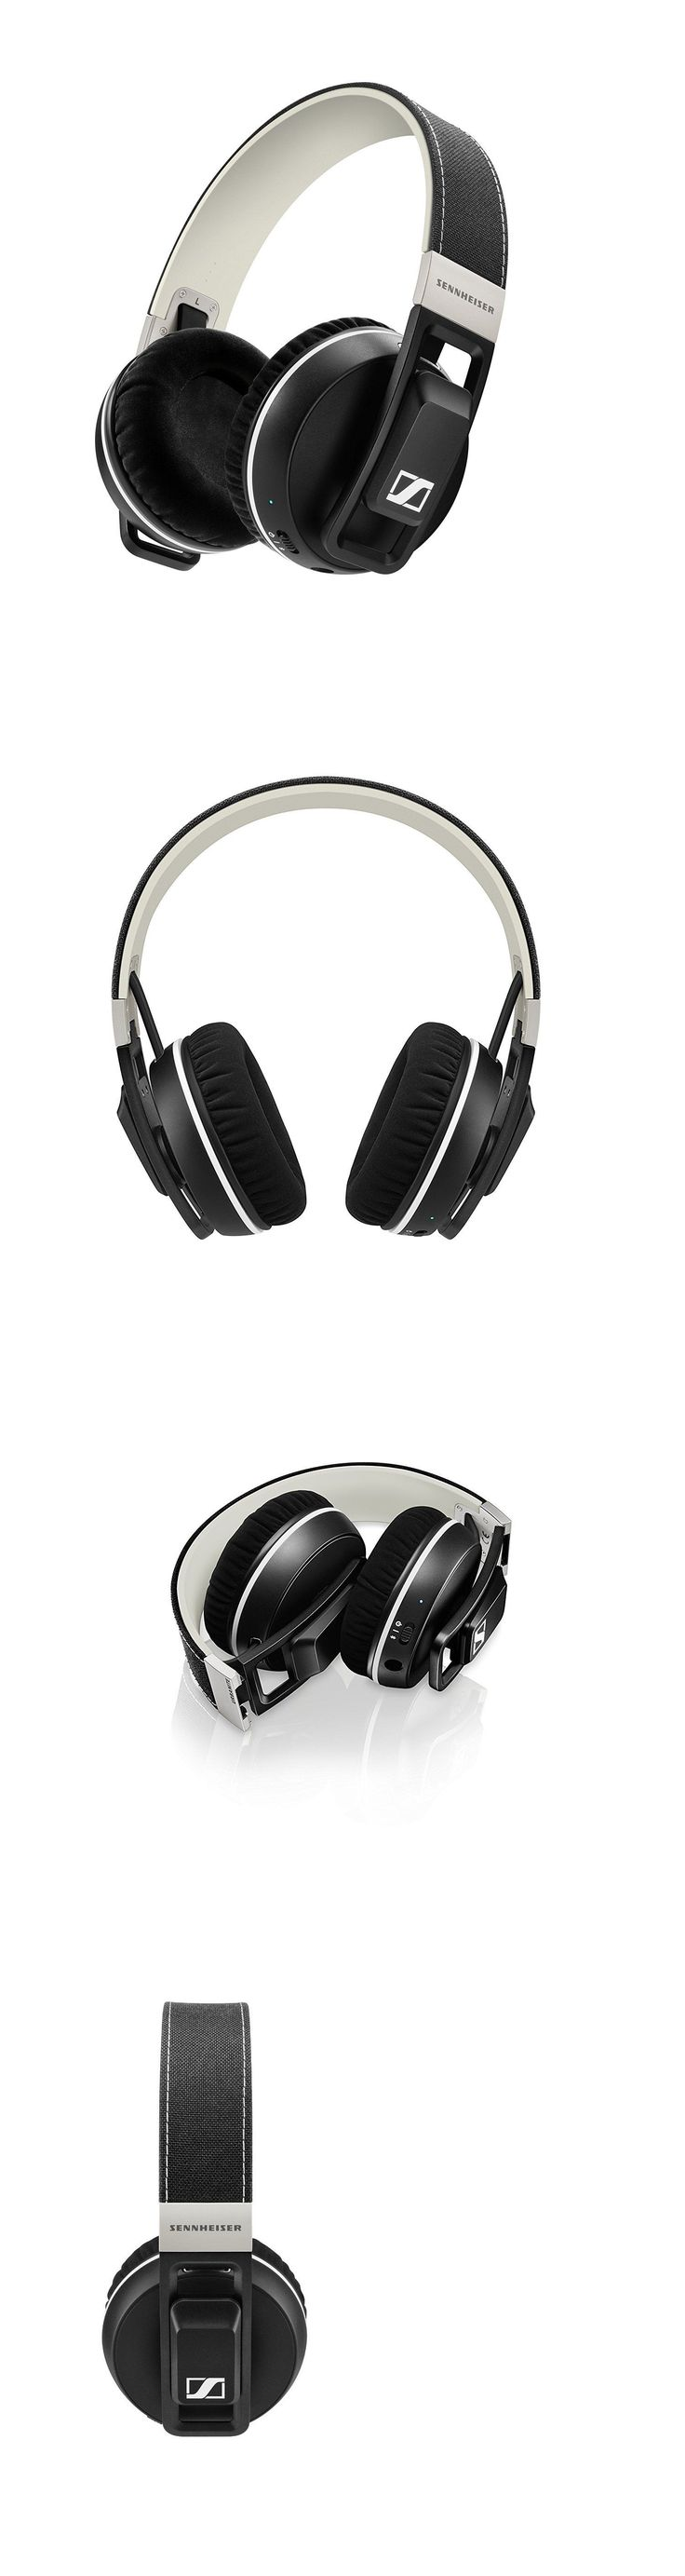 Headsets and Earpieces: Sennheiser Urbanite Xl Bluetooth Wireless Over-The-Ear Headphones Black New BUY IT NOW ONLY: $136.0